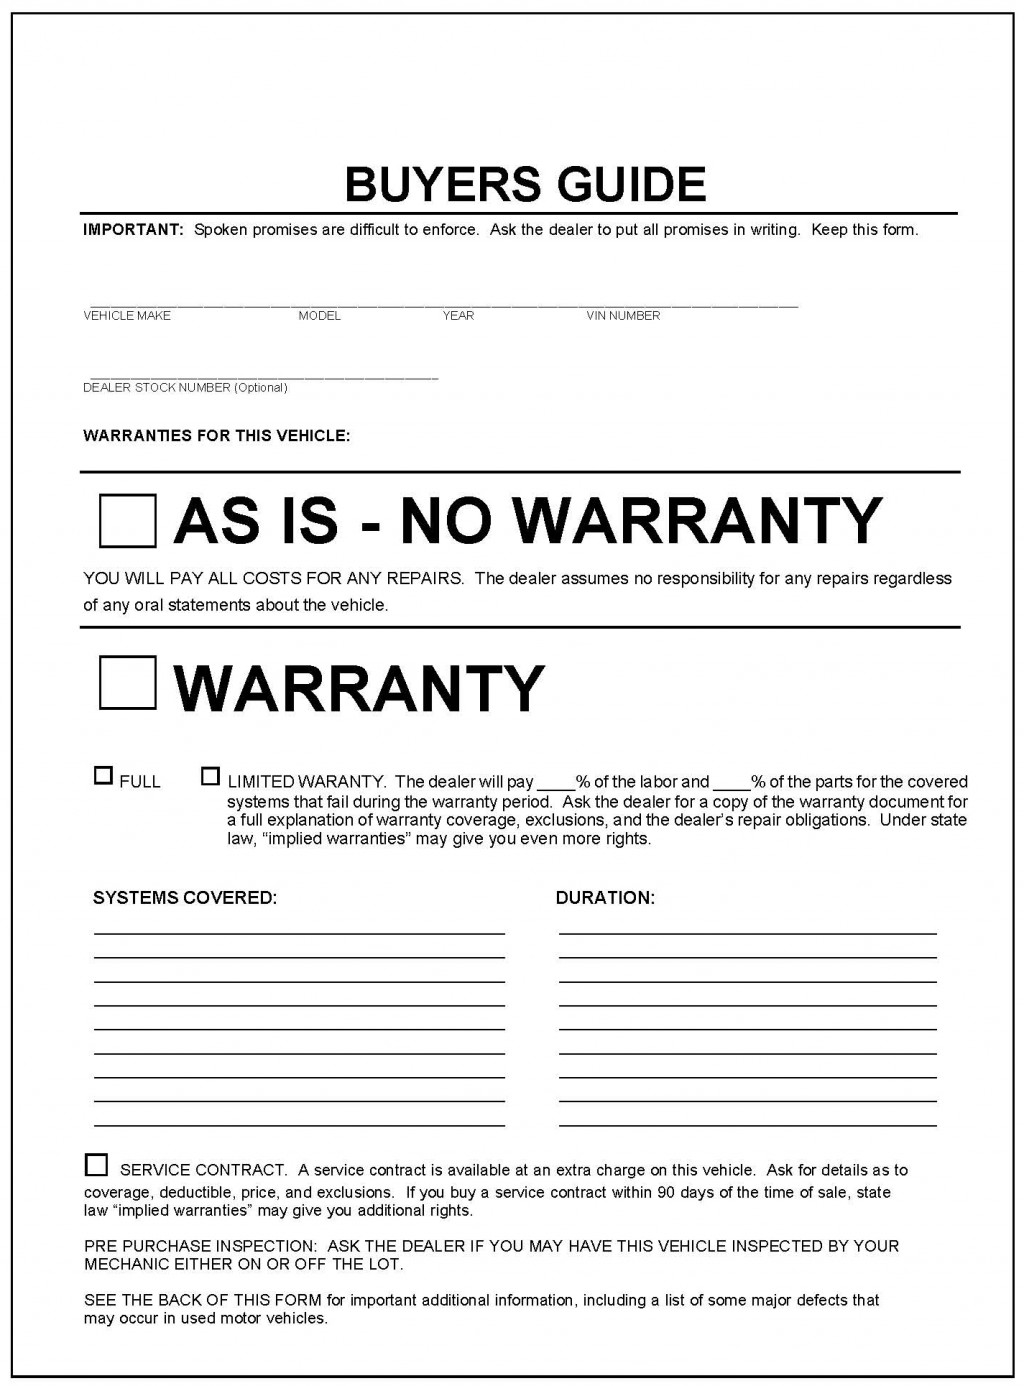 Vehicle Purchase Agreement 31 Template Birthday Invitations Sample Ftcs  Used Car Buyers Guide 100580431 L Vehicle